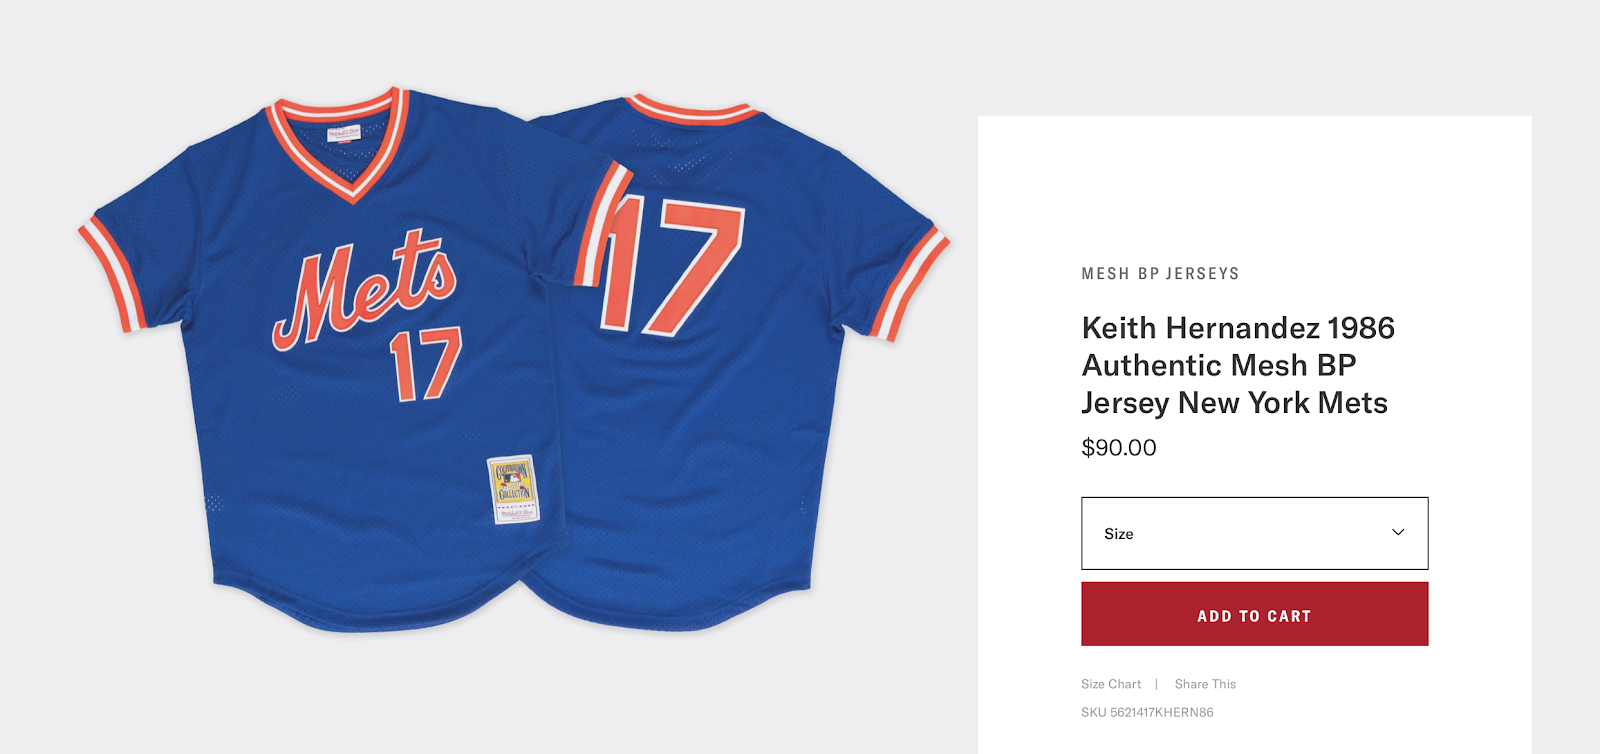 100% authentic 273c1 59138 TheMediagoon.com: This jersey might be something cool to get ...